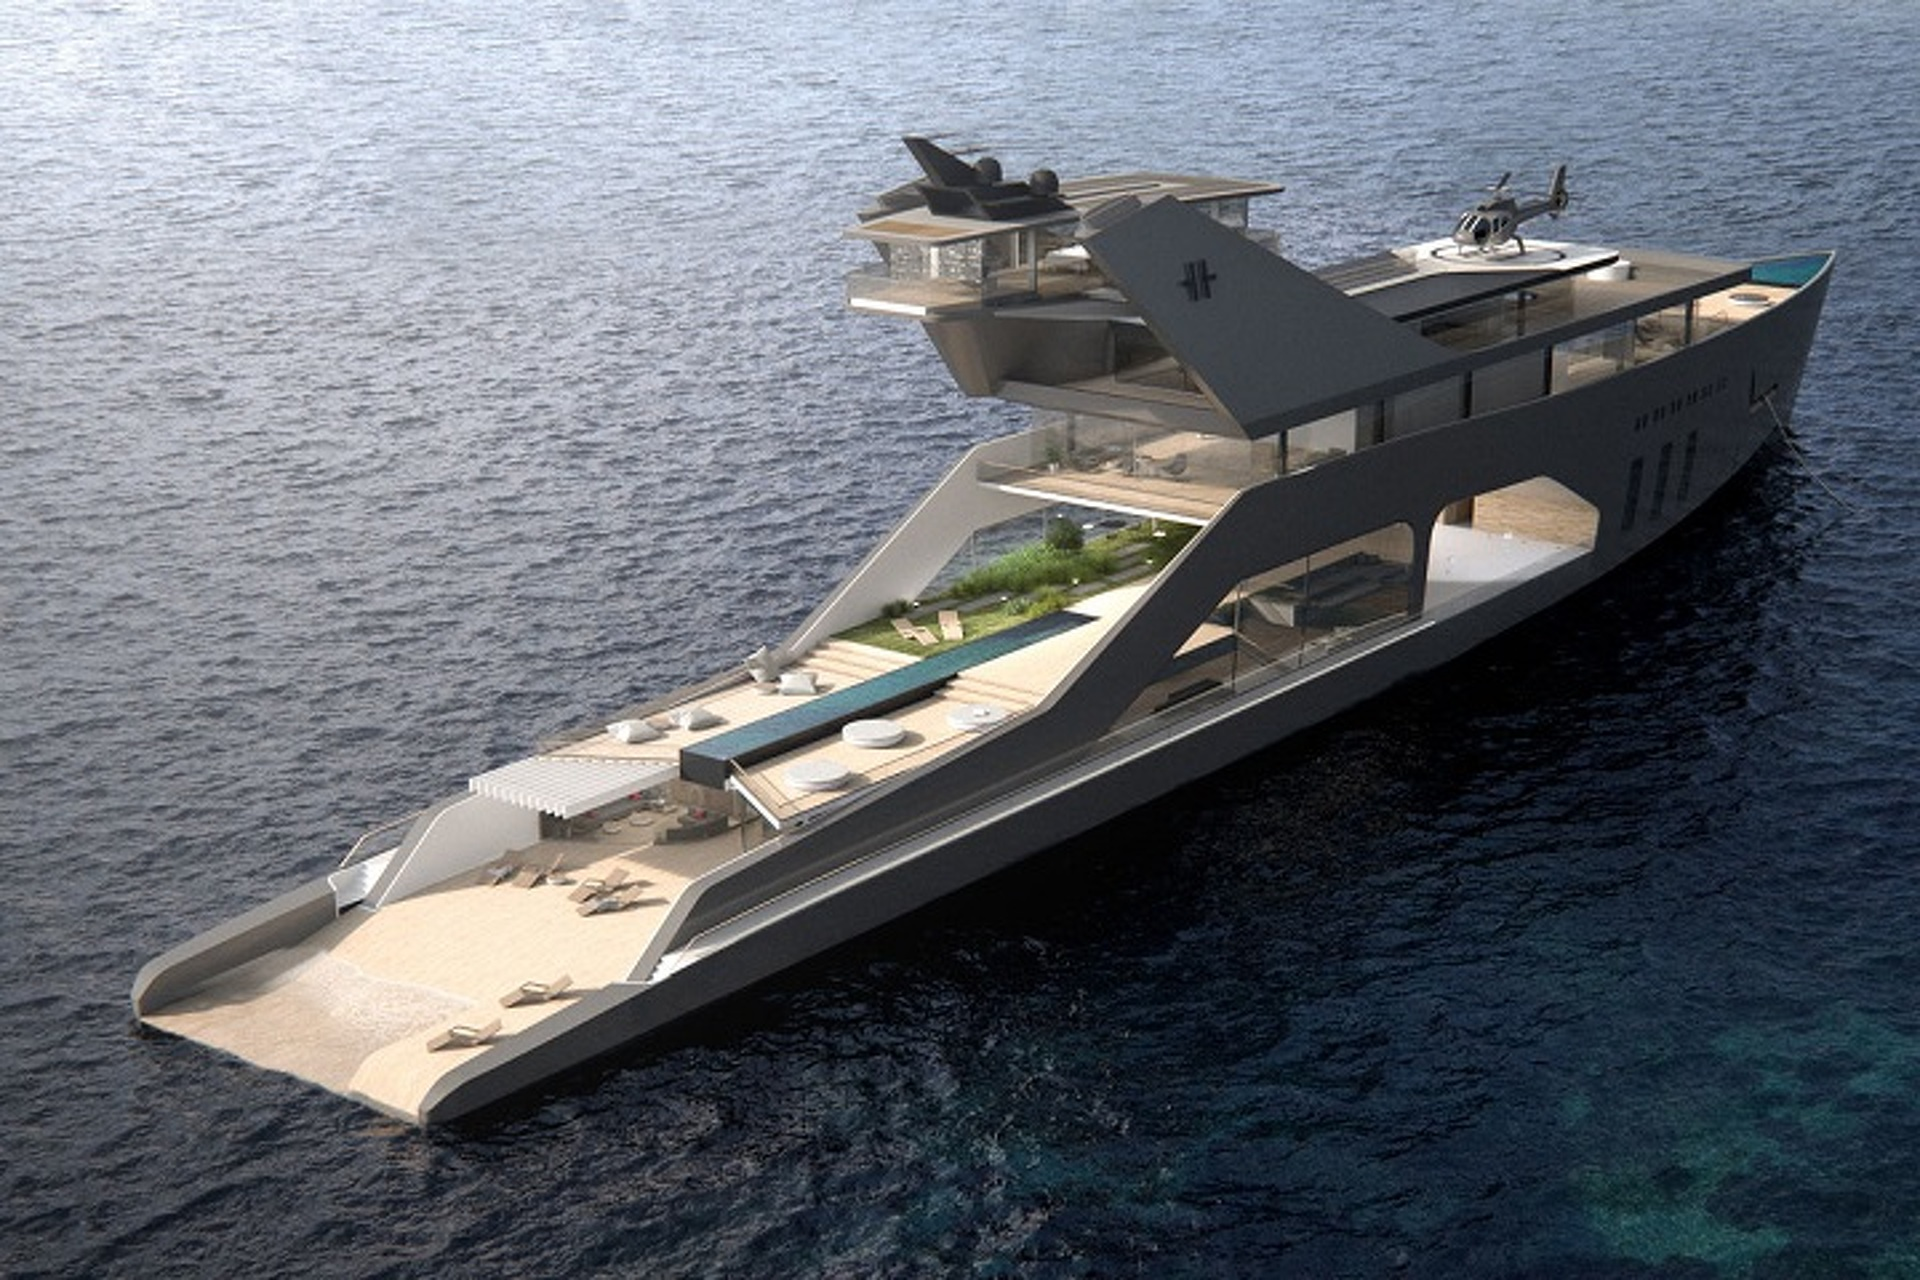 Hareide Design's Mega Yacht is the Stuff of Dreams